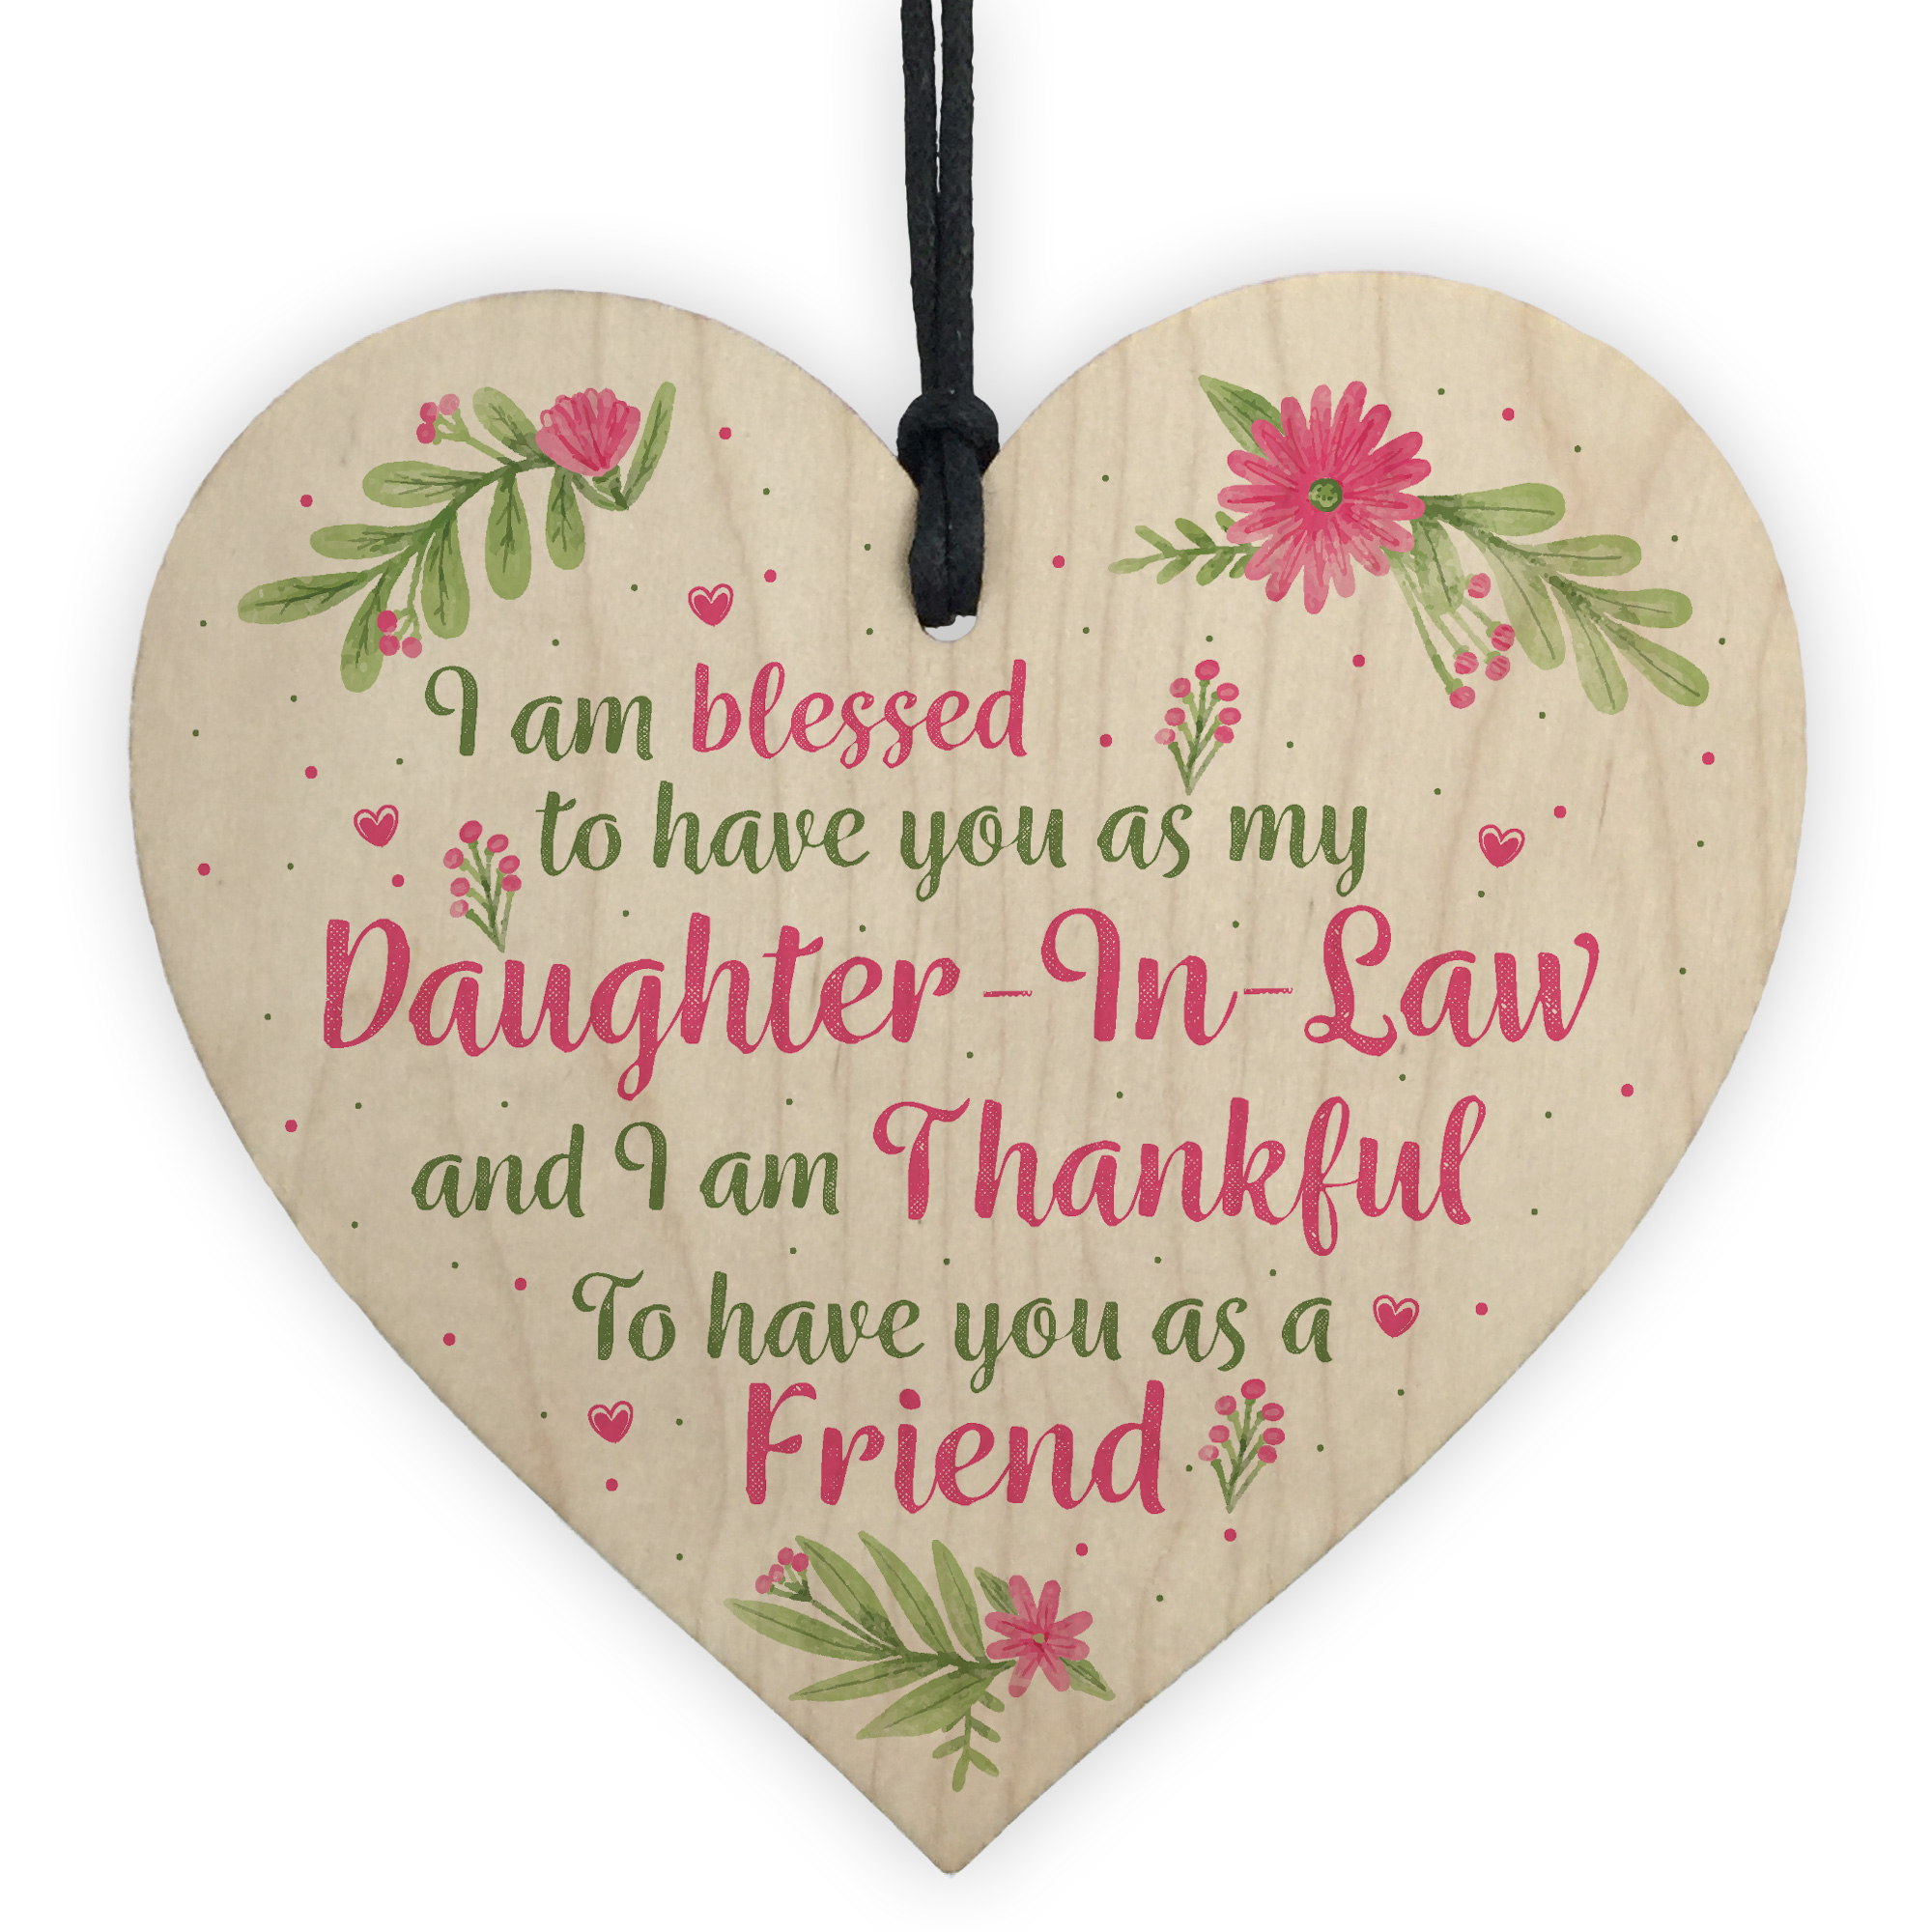 Details About Daughter In Law Plaques Wooden Heart Birthday Card Wedding Xmas GIFTS For Her